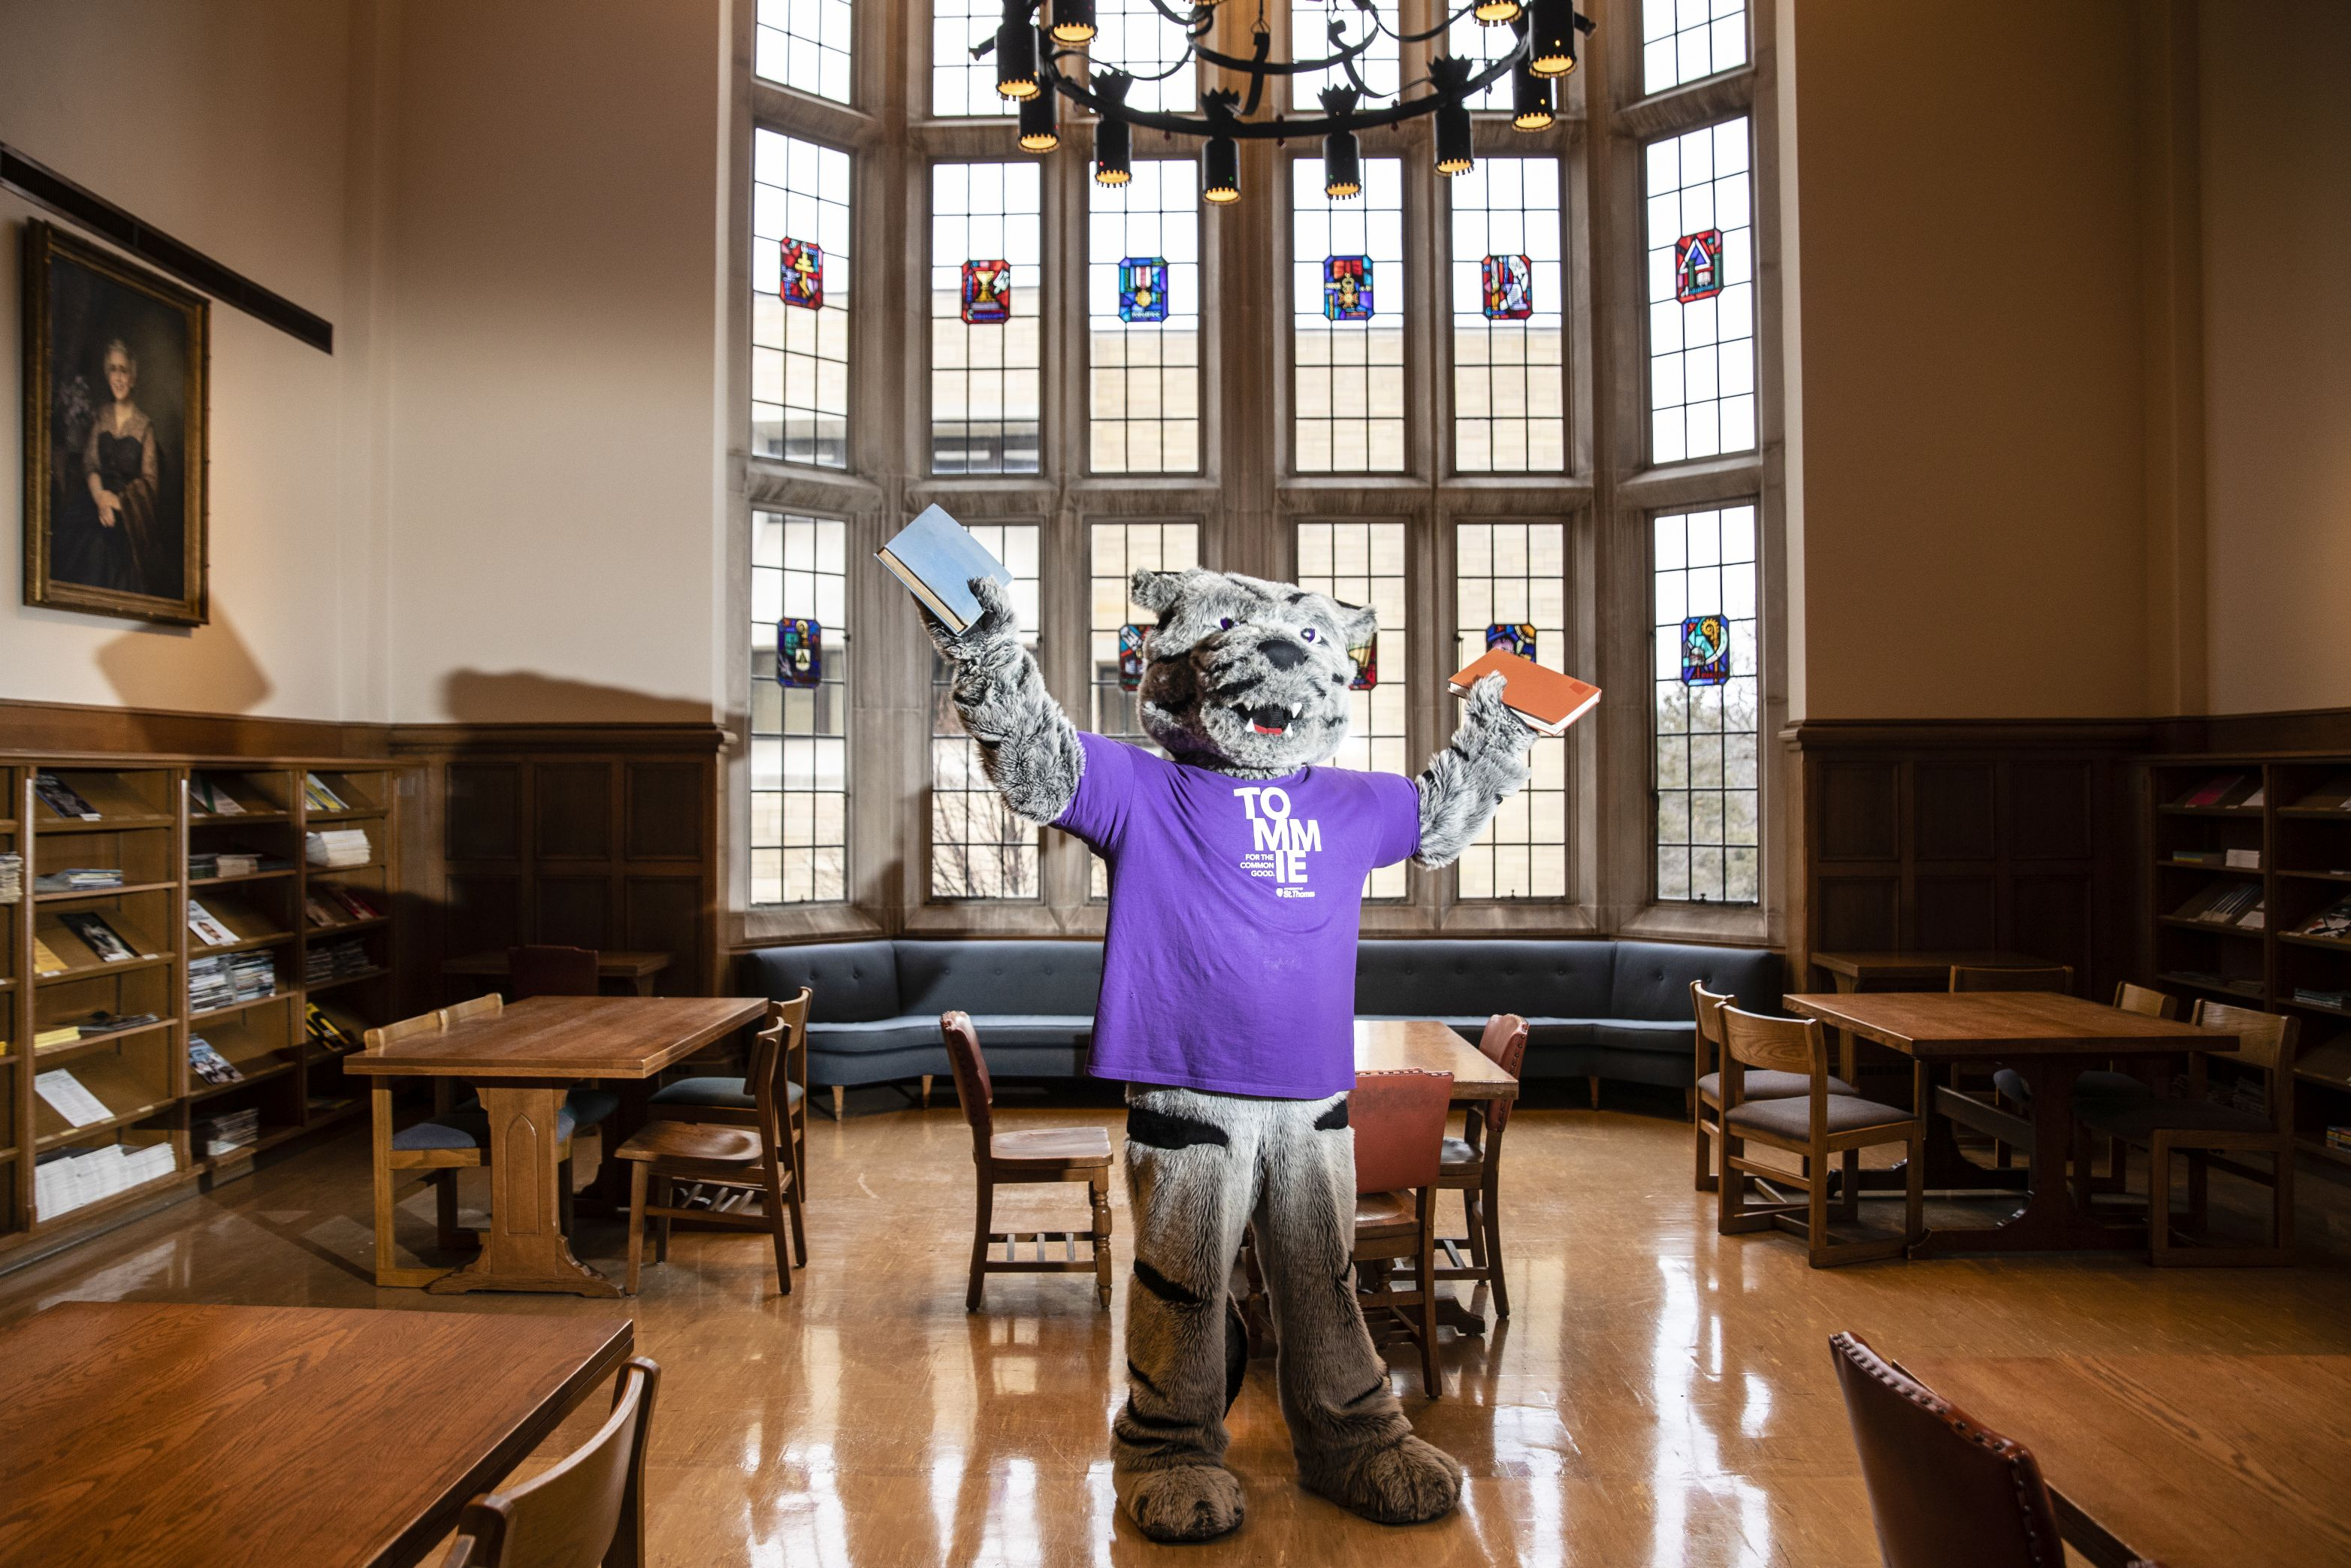 photo of Tommie mascot in the library's great hall holding books